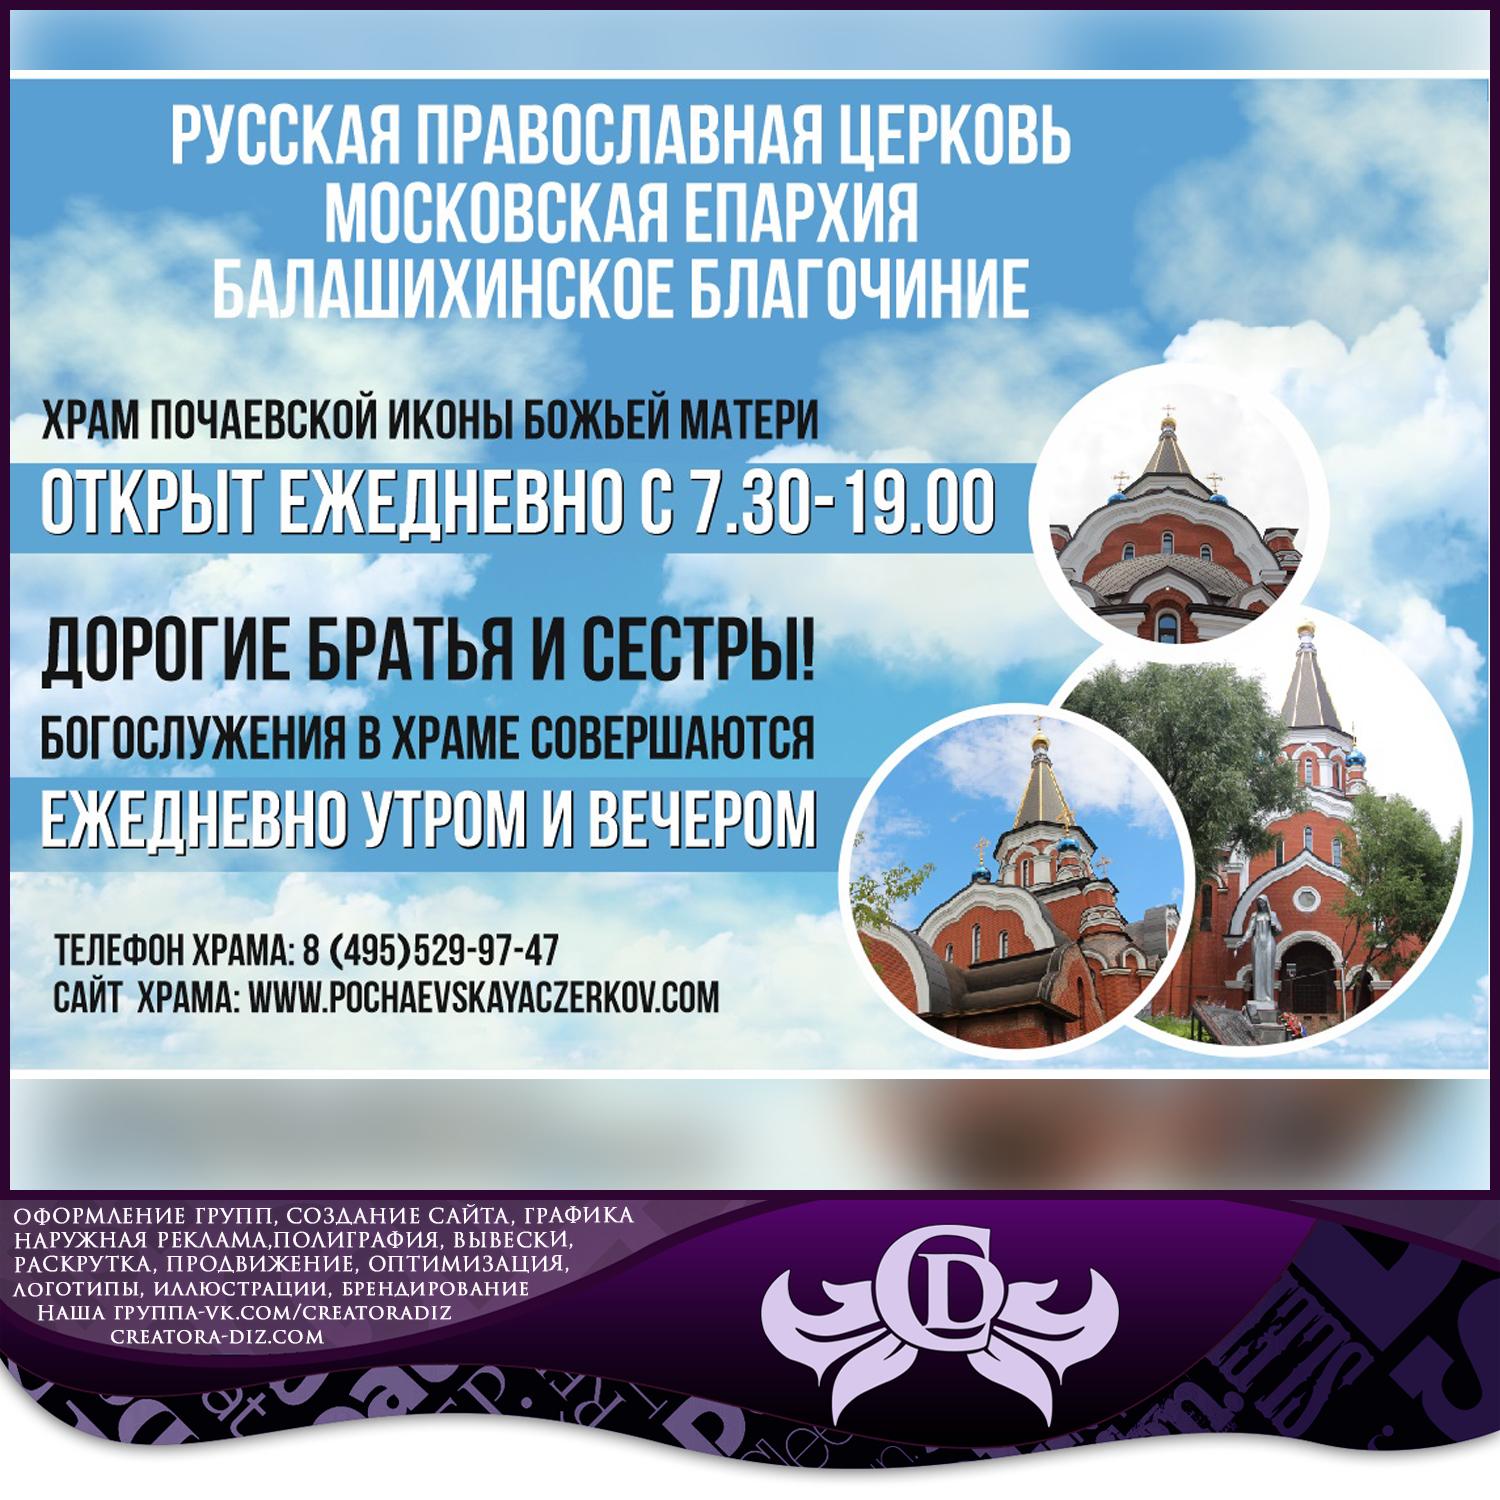 http://images.vfl.ru/ii/1531394063/e29bfe4f/22454156.png